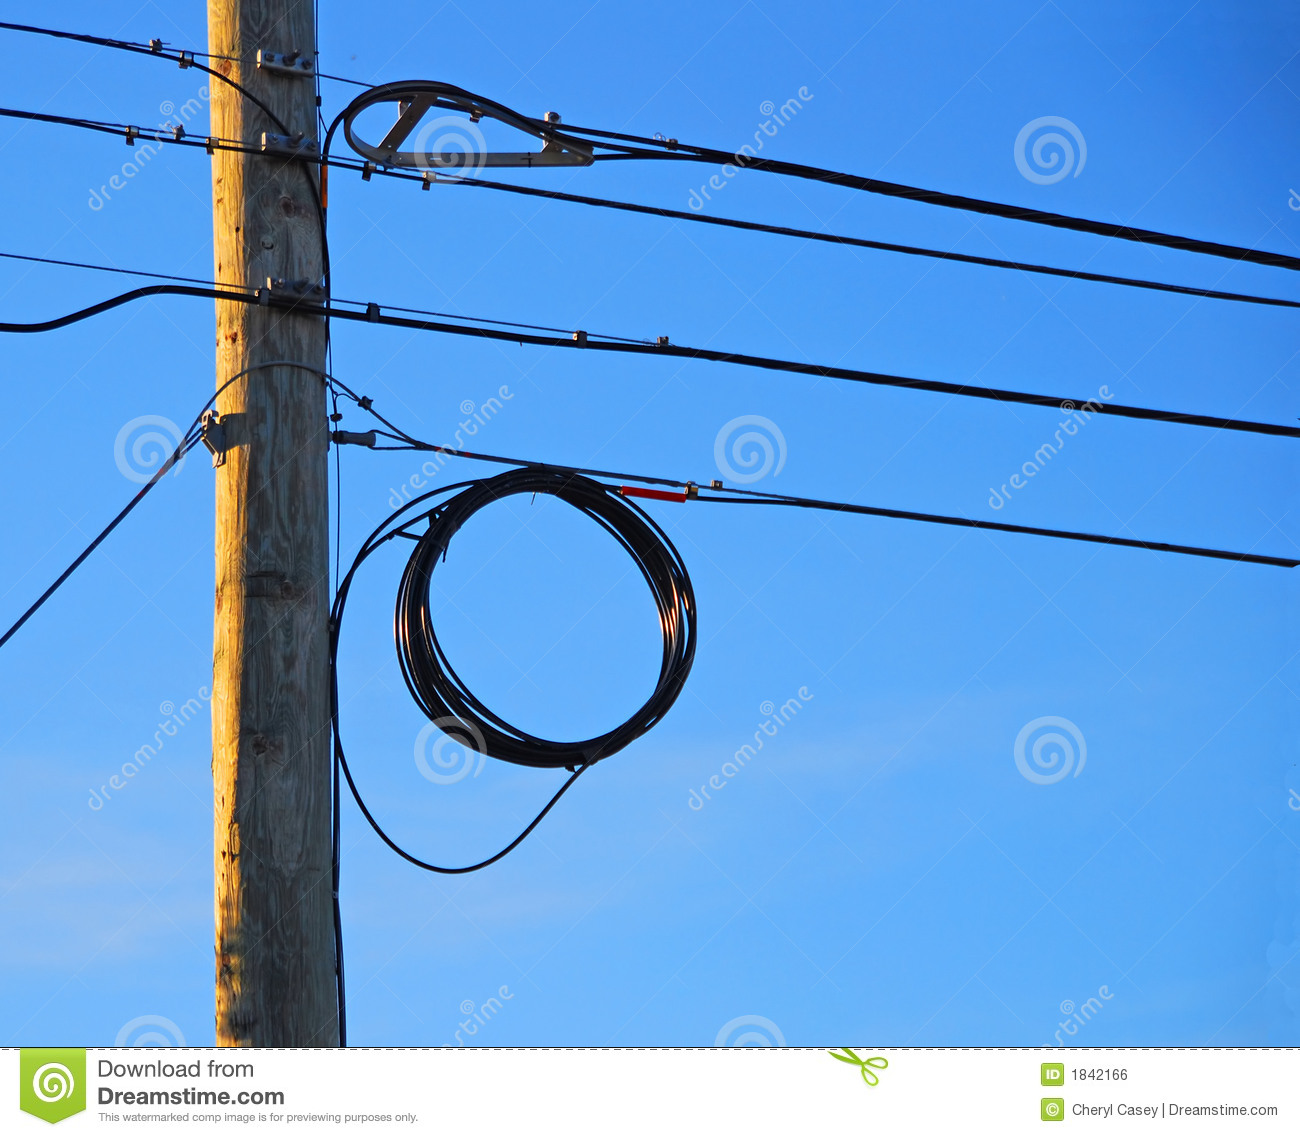 Telephone Pole and Wires stock photo. Image of pole, communication ...